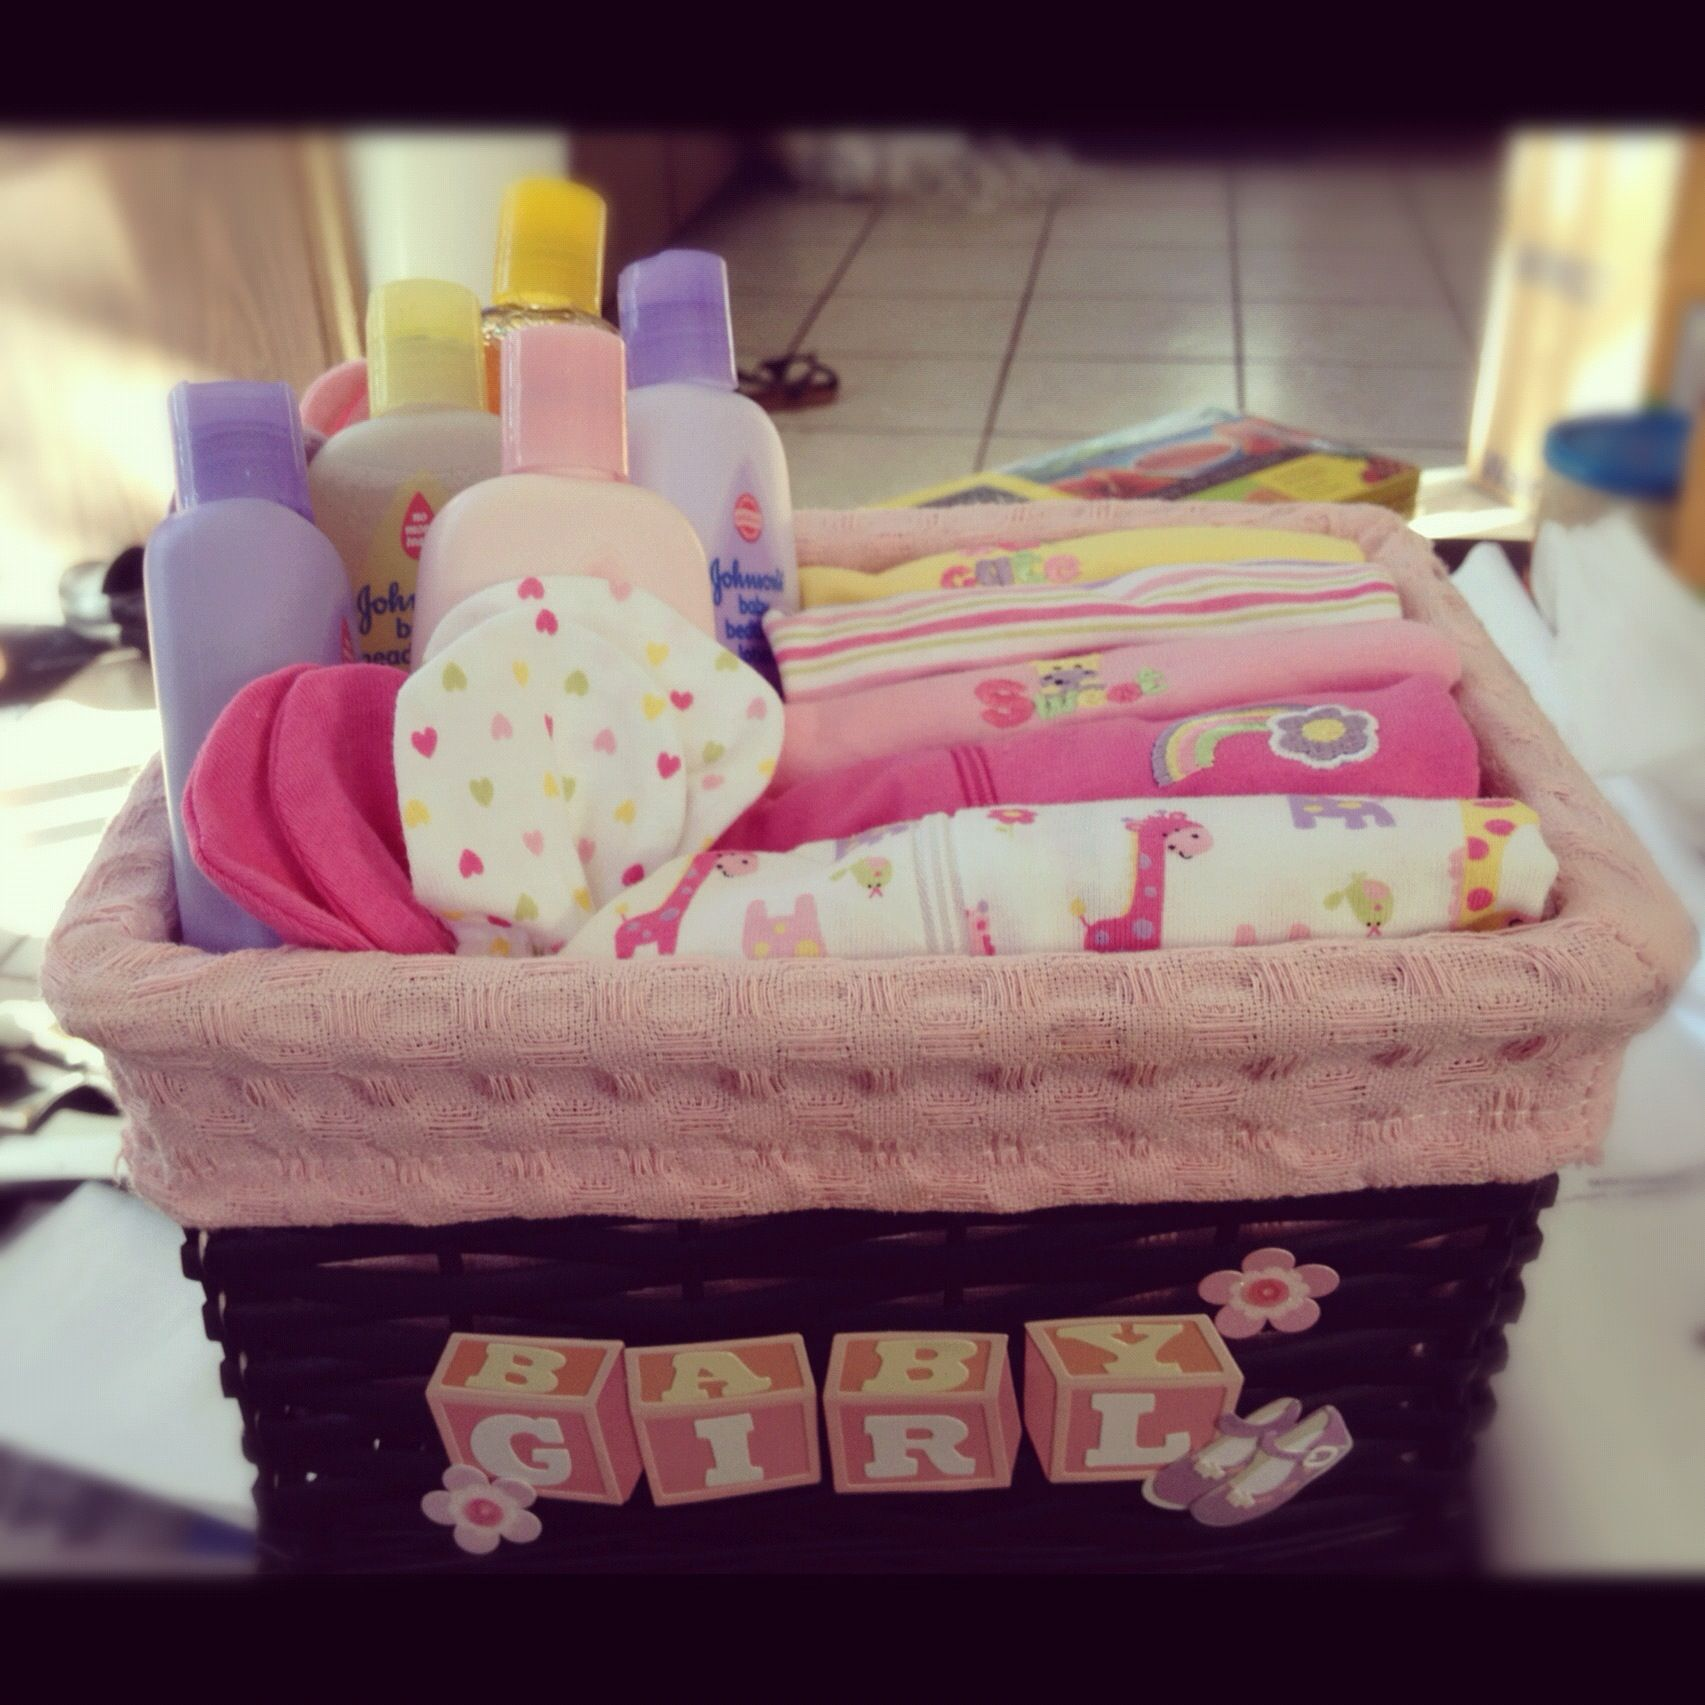 Baby Shower Diy Gift Basket  Baby Shower Baskets, Diy -6965